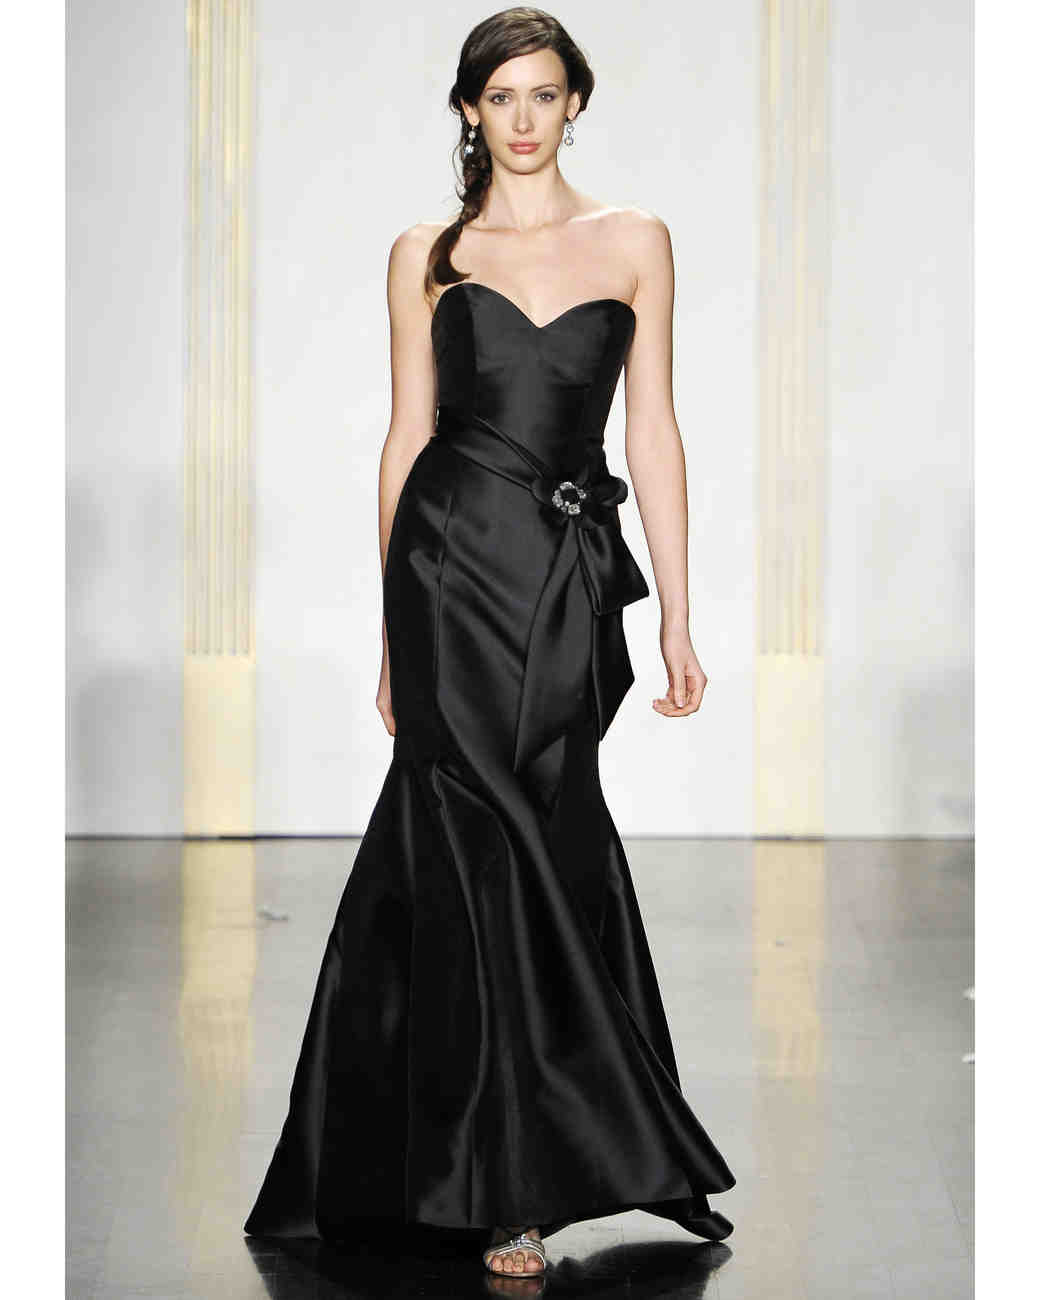 Noir by lazaro fall 2012 collection martha stewart weddings ombrellifo Image collections